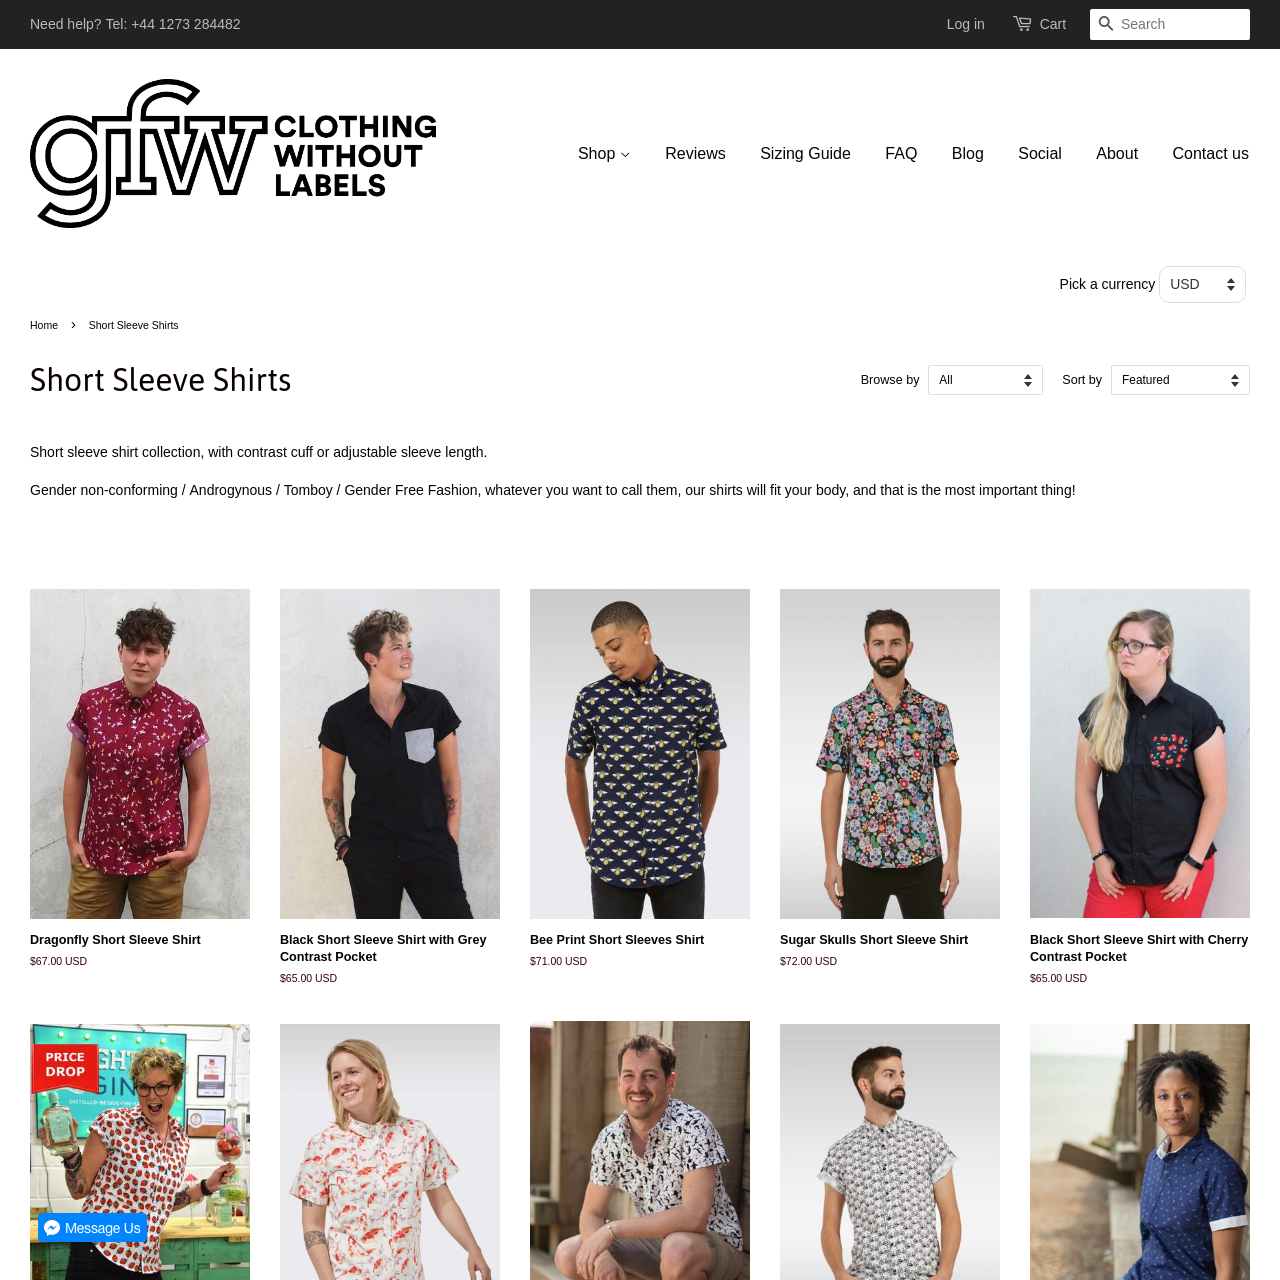 ef4f45fb1d146 Are.na   Short Sleeve Shirts - GFW Clothing